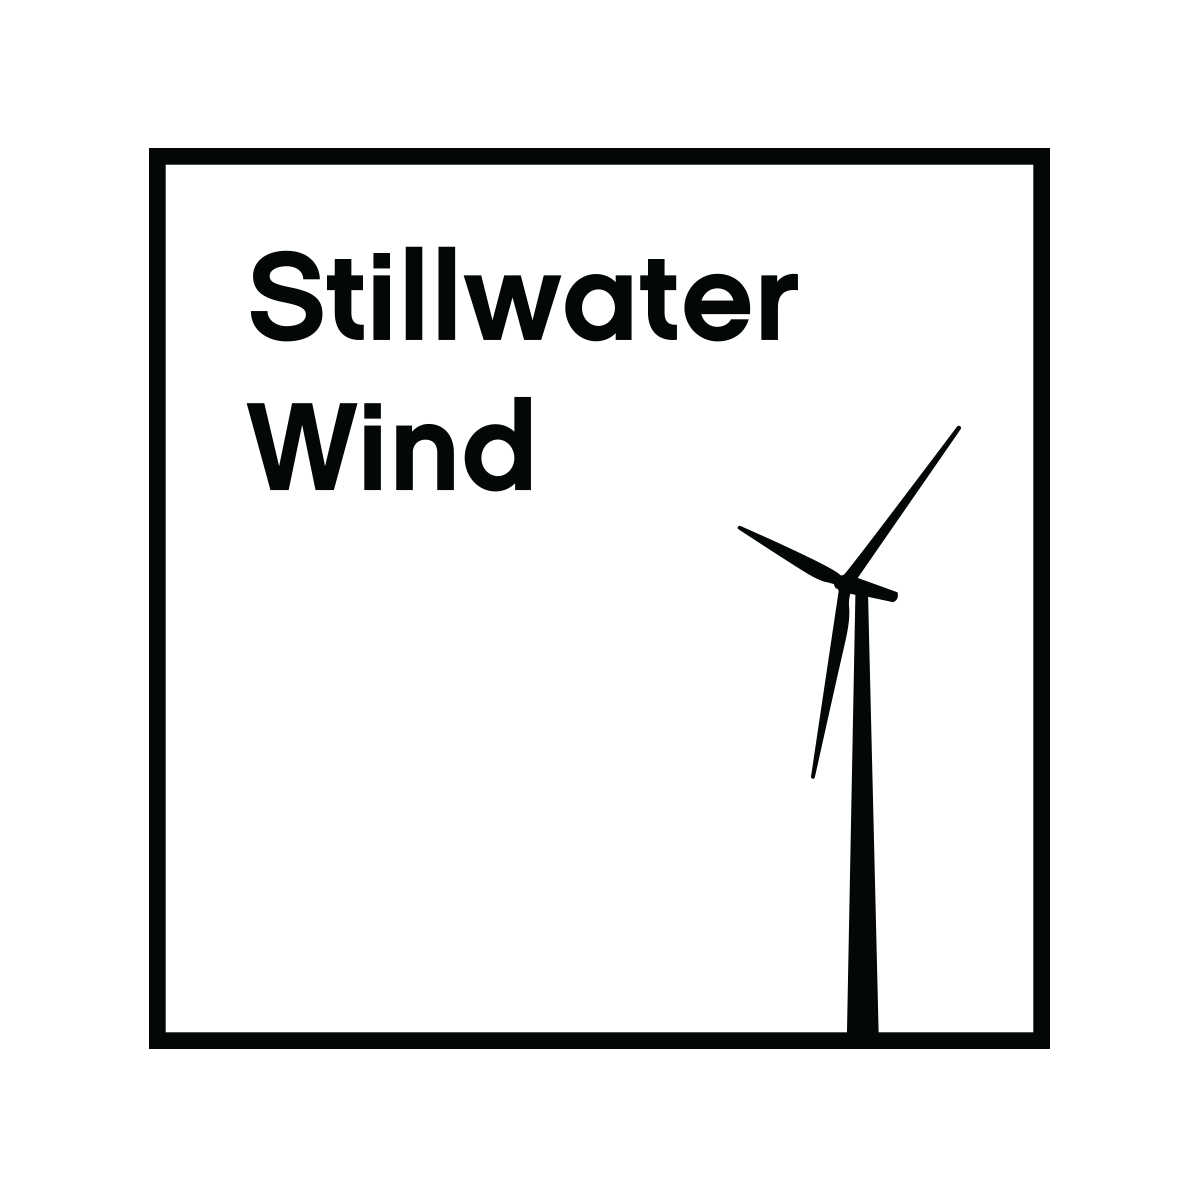 https://patternenergy.com/learn/portfolio/stillwater-wind